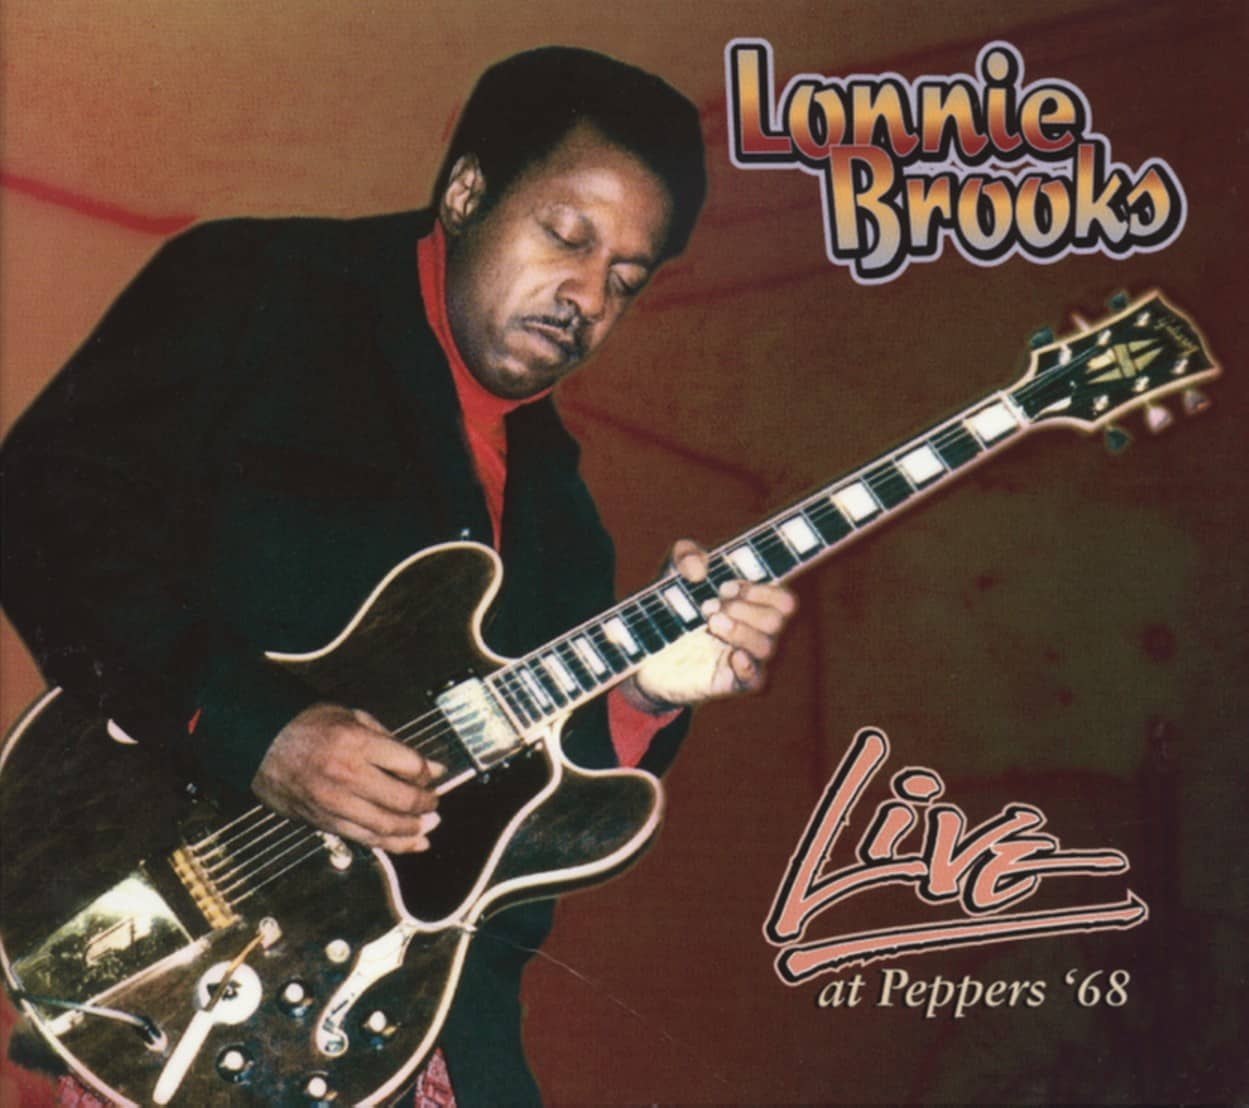 Lonnie Brooks - Live At Peppers